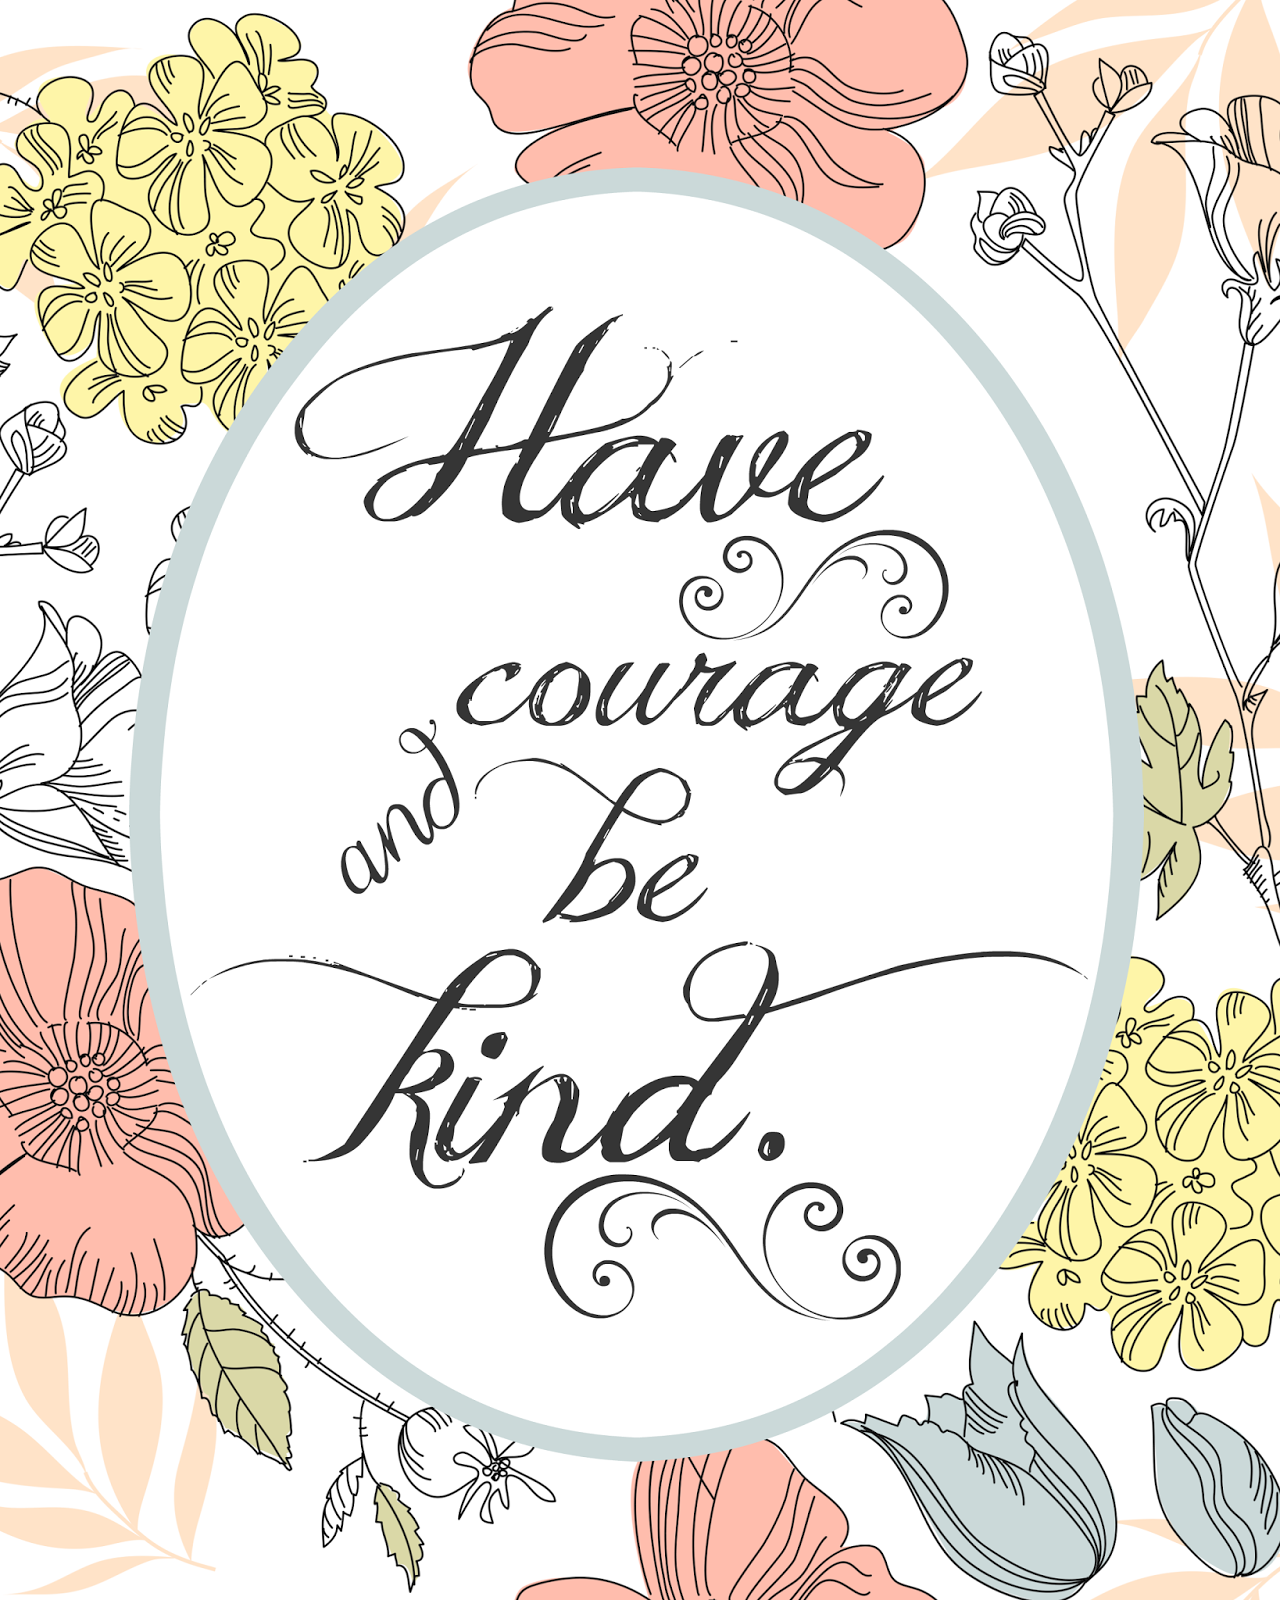 photo about Have Courage and Be Kind Printable identified as The Lifestyle of Jennifer Sunrise: Estimate Appreciate: \